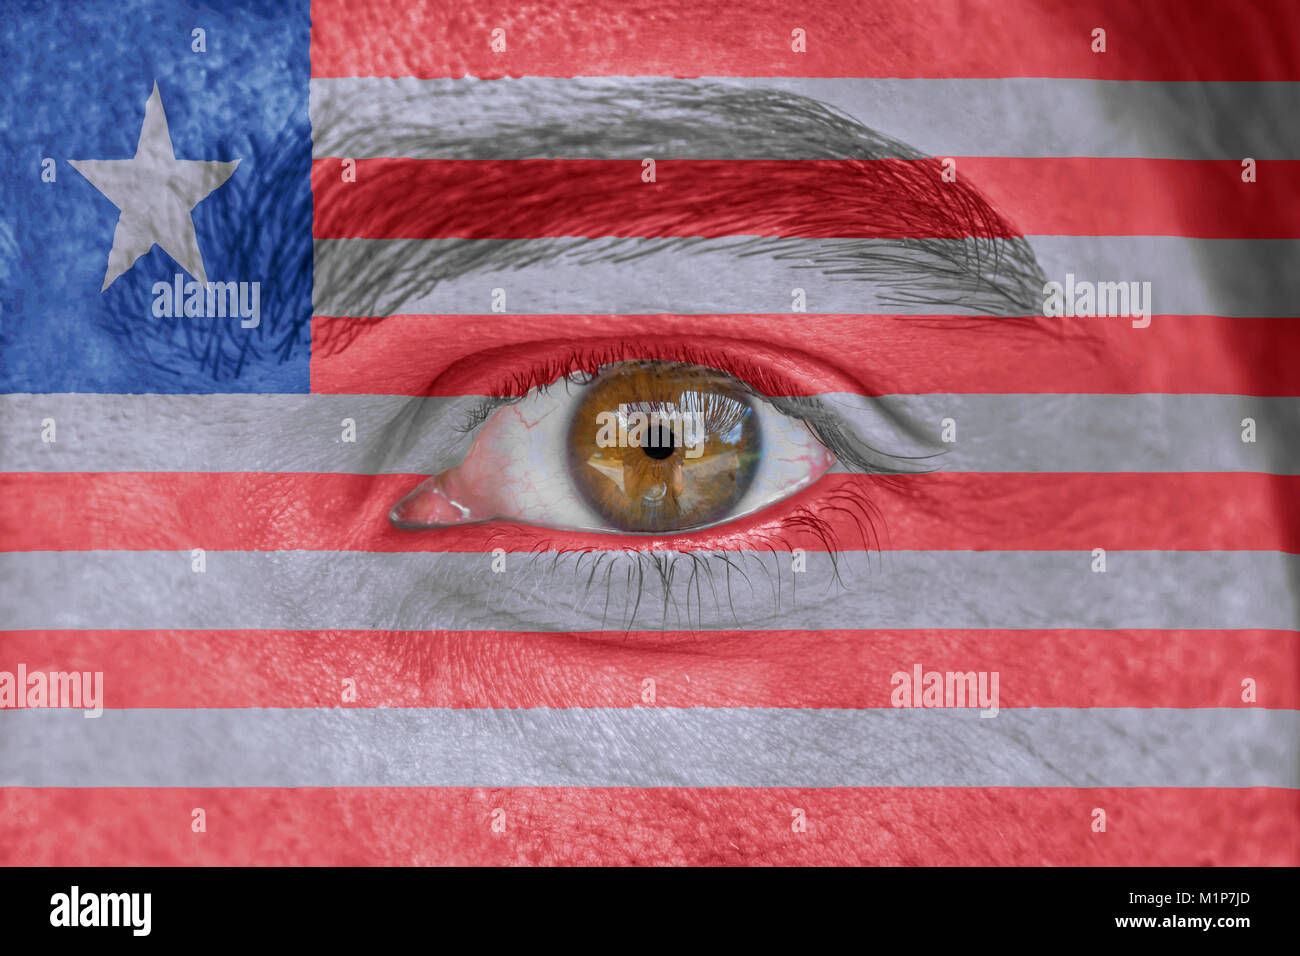 Human face and eye painted with flag of Liberia - Stock Image